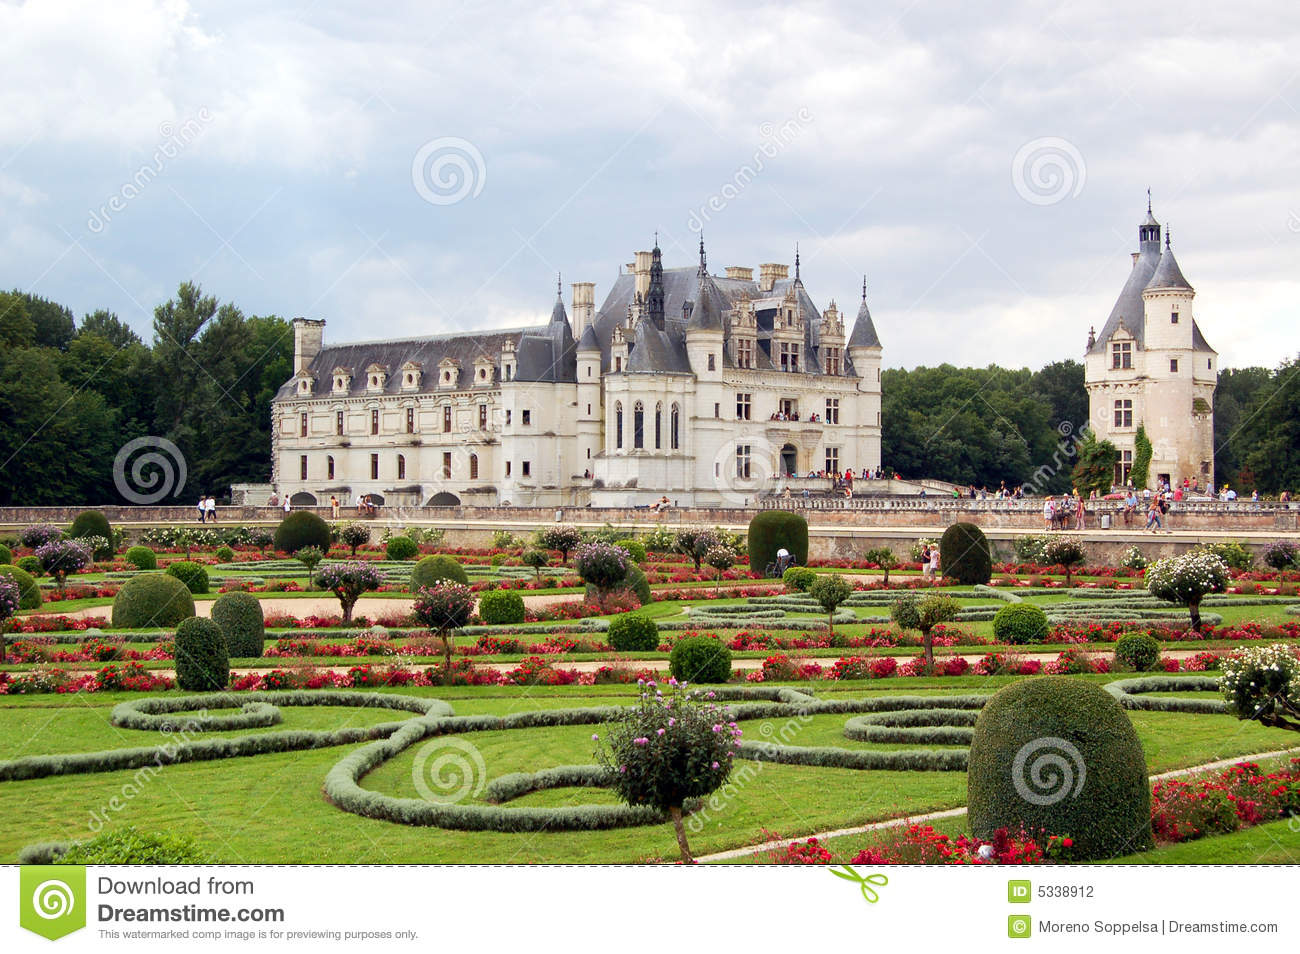 map of the loire valley with Stock Photography Chateau De Chenonceau Gardens Image5338912 on Ferienwohnung Unterkunft Cluny 118113 also 8664047382 likewise Ch s Elysees besides Chenonghost moreover Annecy.